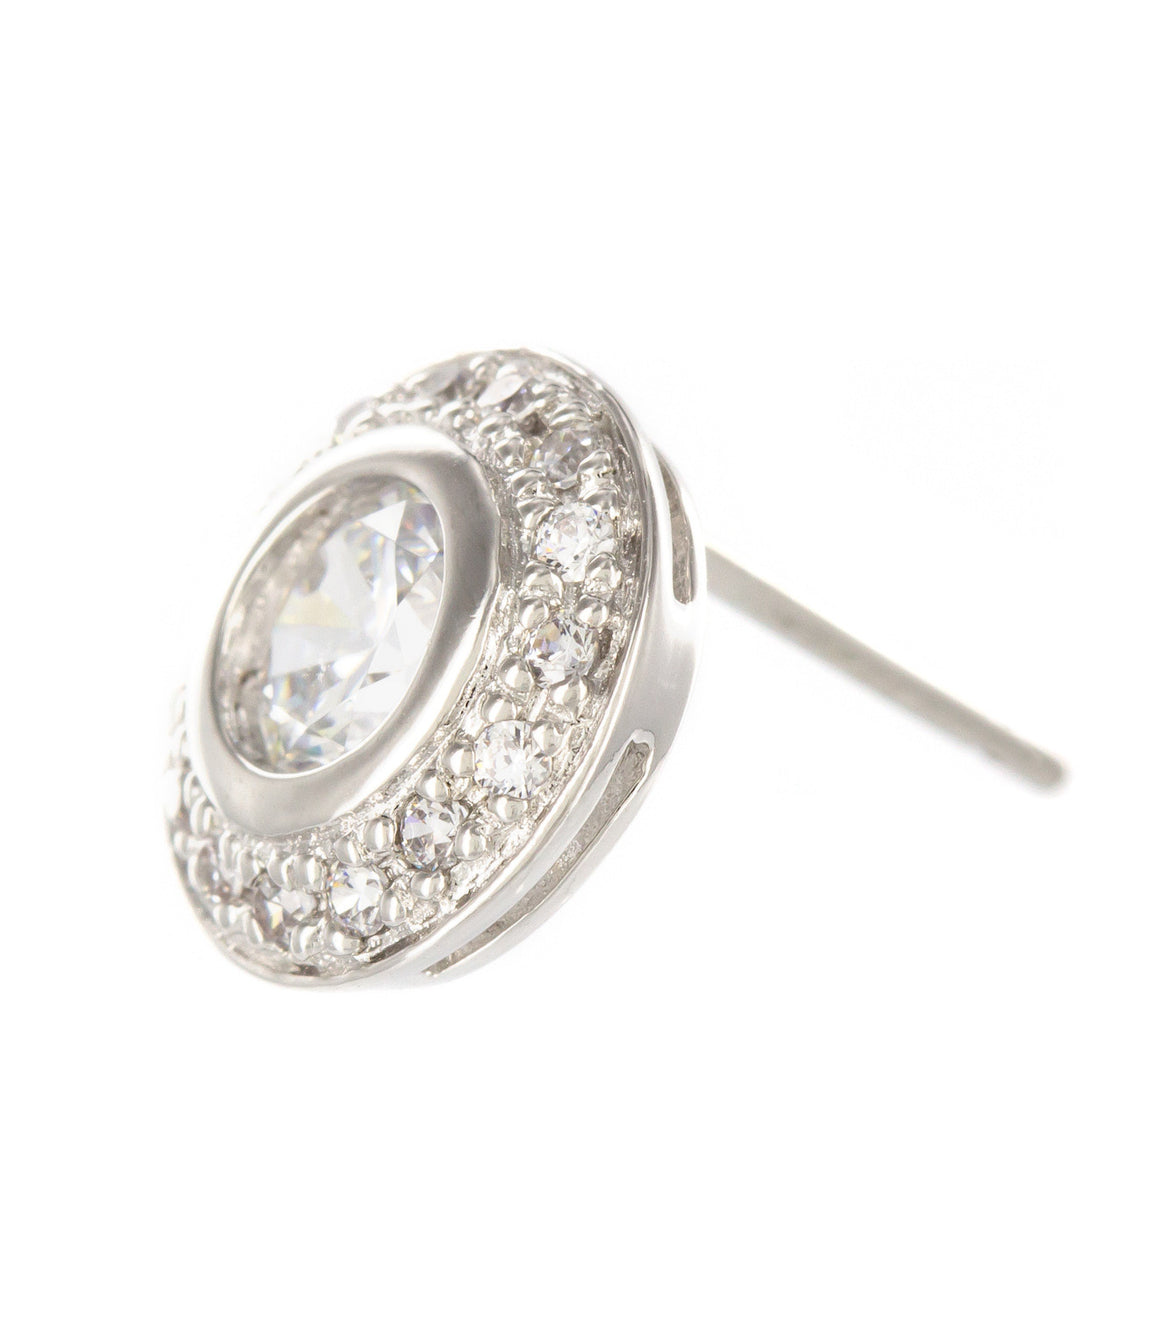 Round cubic zirconia Stud Earrings.